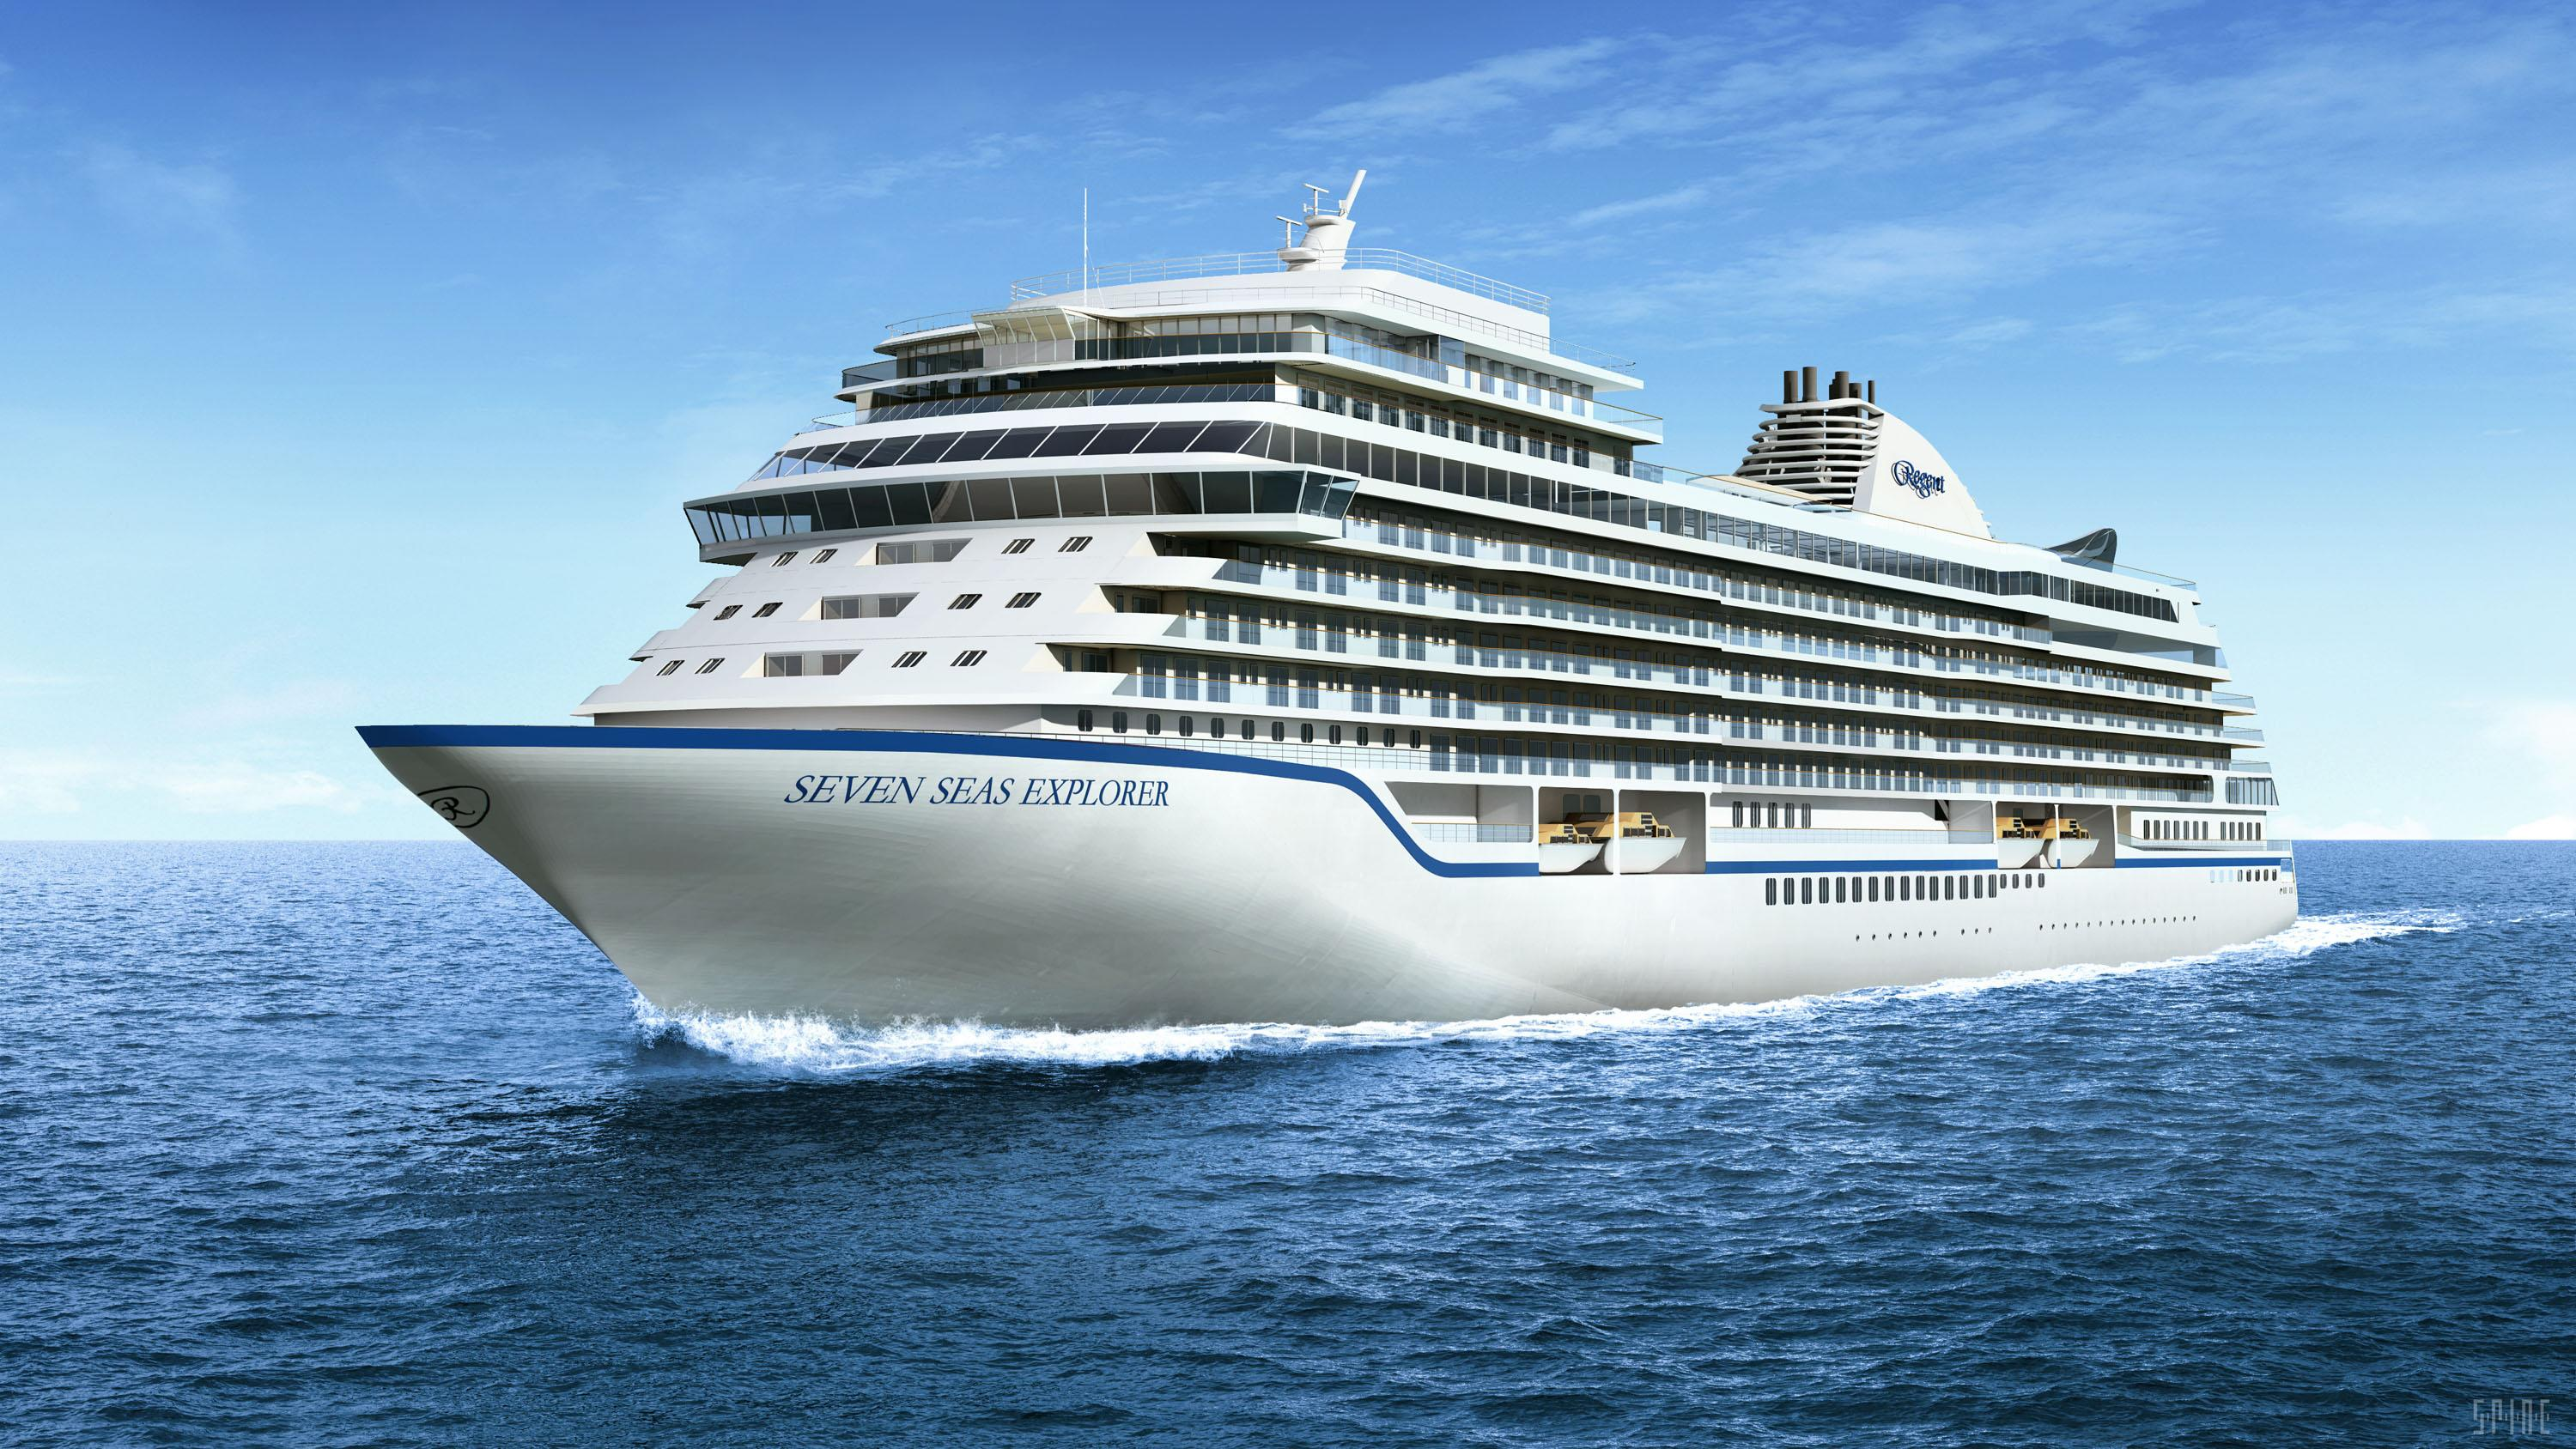 New in cruises: Snow rooms, better Wi-Fi and other wows